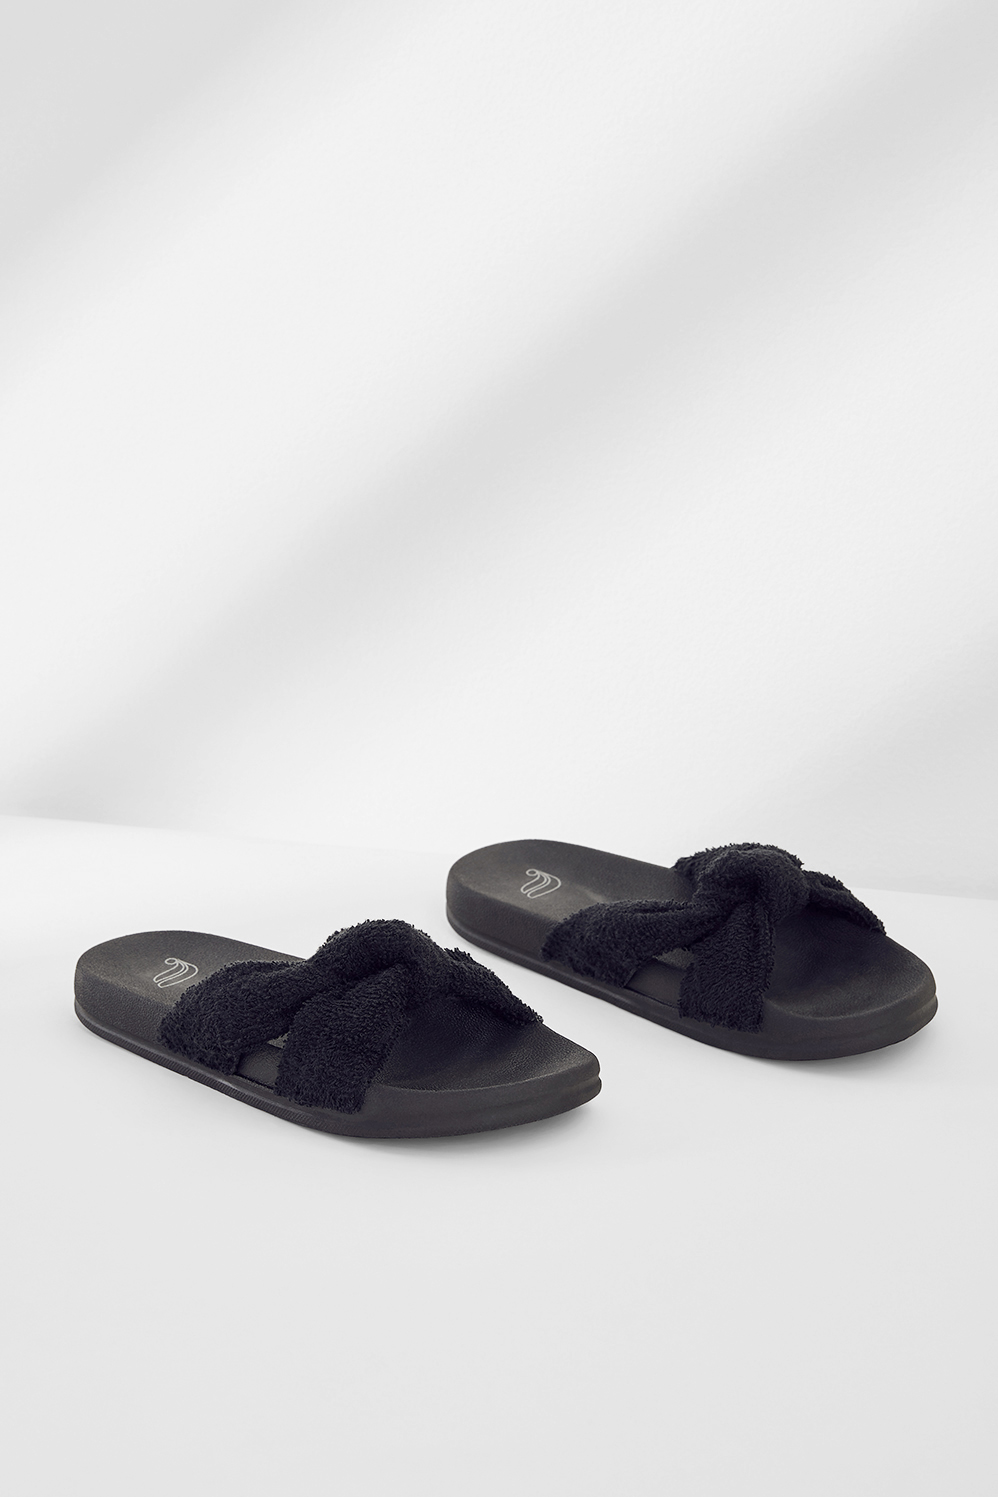 Fabletics Fashion Playa Knot Slide Womens Black Size 8 Slide on into the studio in our slip-on-and-go sandals with a plush terry strap and contoured footbed that cradles your feet. Comfortable, Contoured Footbed, Plush Terry Strap, Fabric Content. Textile Upper / Man Made Sole, Fit. True to size